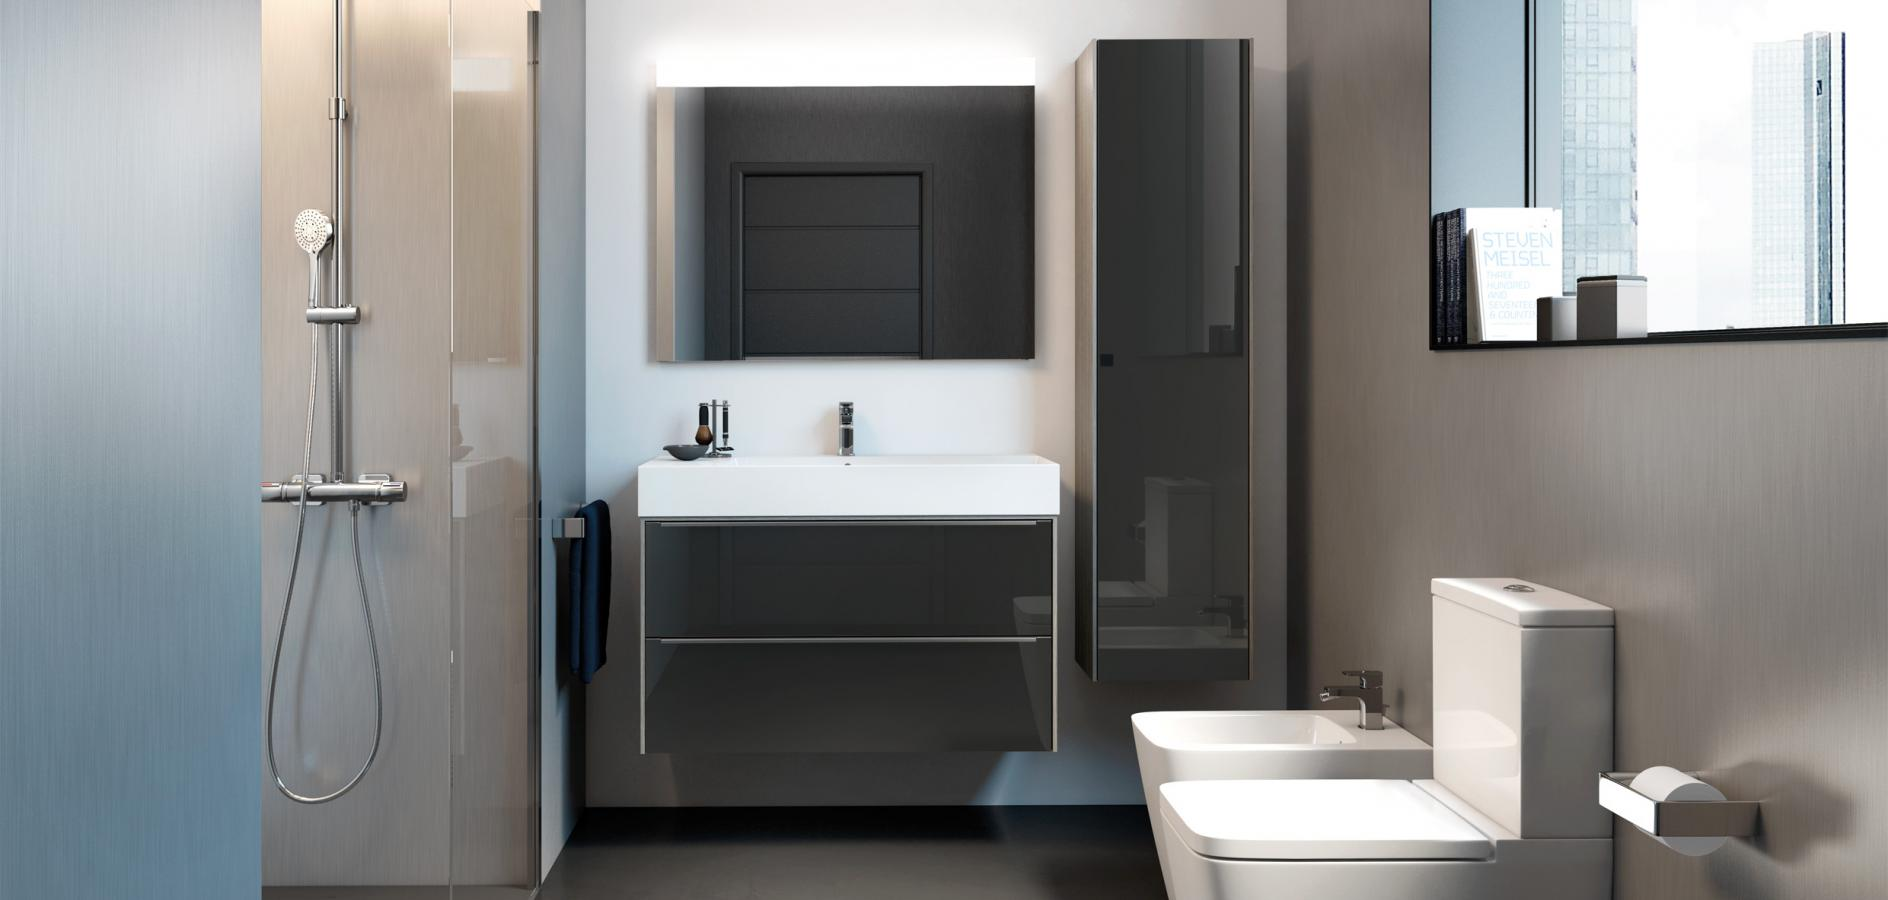 Tremendous Maximise Your Space With A Small Bathroom Cupboard Roca Life Interior Design Ideas Jittwwsoteloinfo